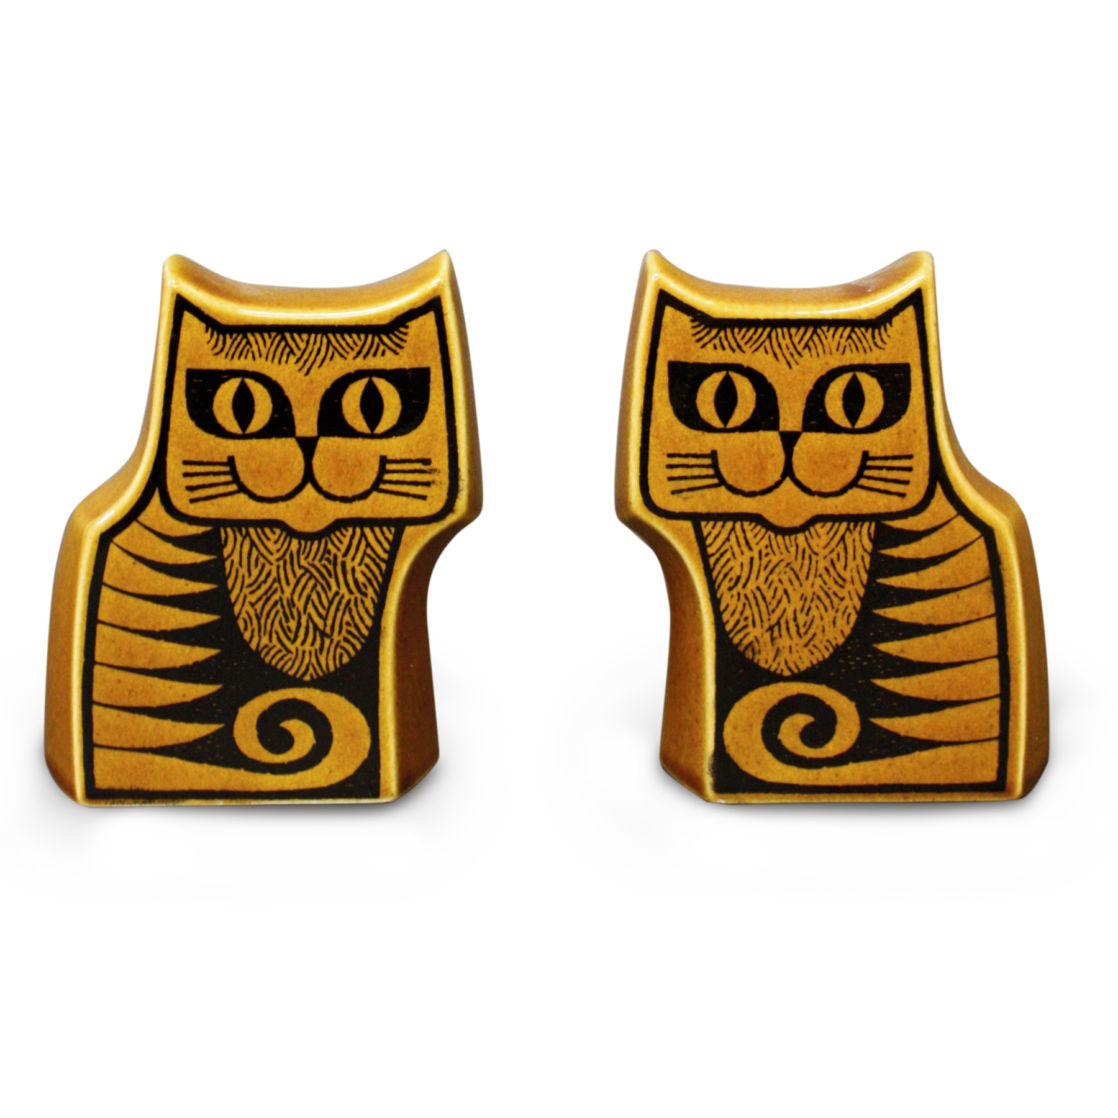 Hornsea Pottery - Ceramic Cat Salt and Pepper - Ceramic Review magazine